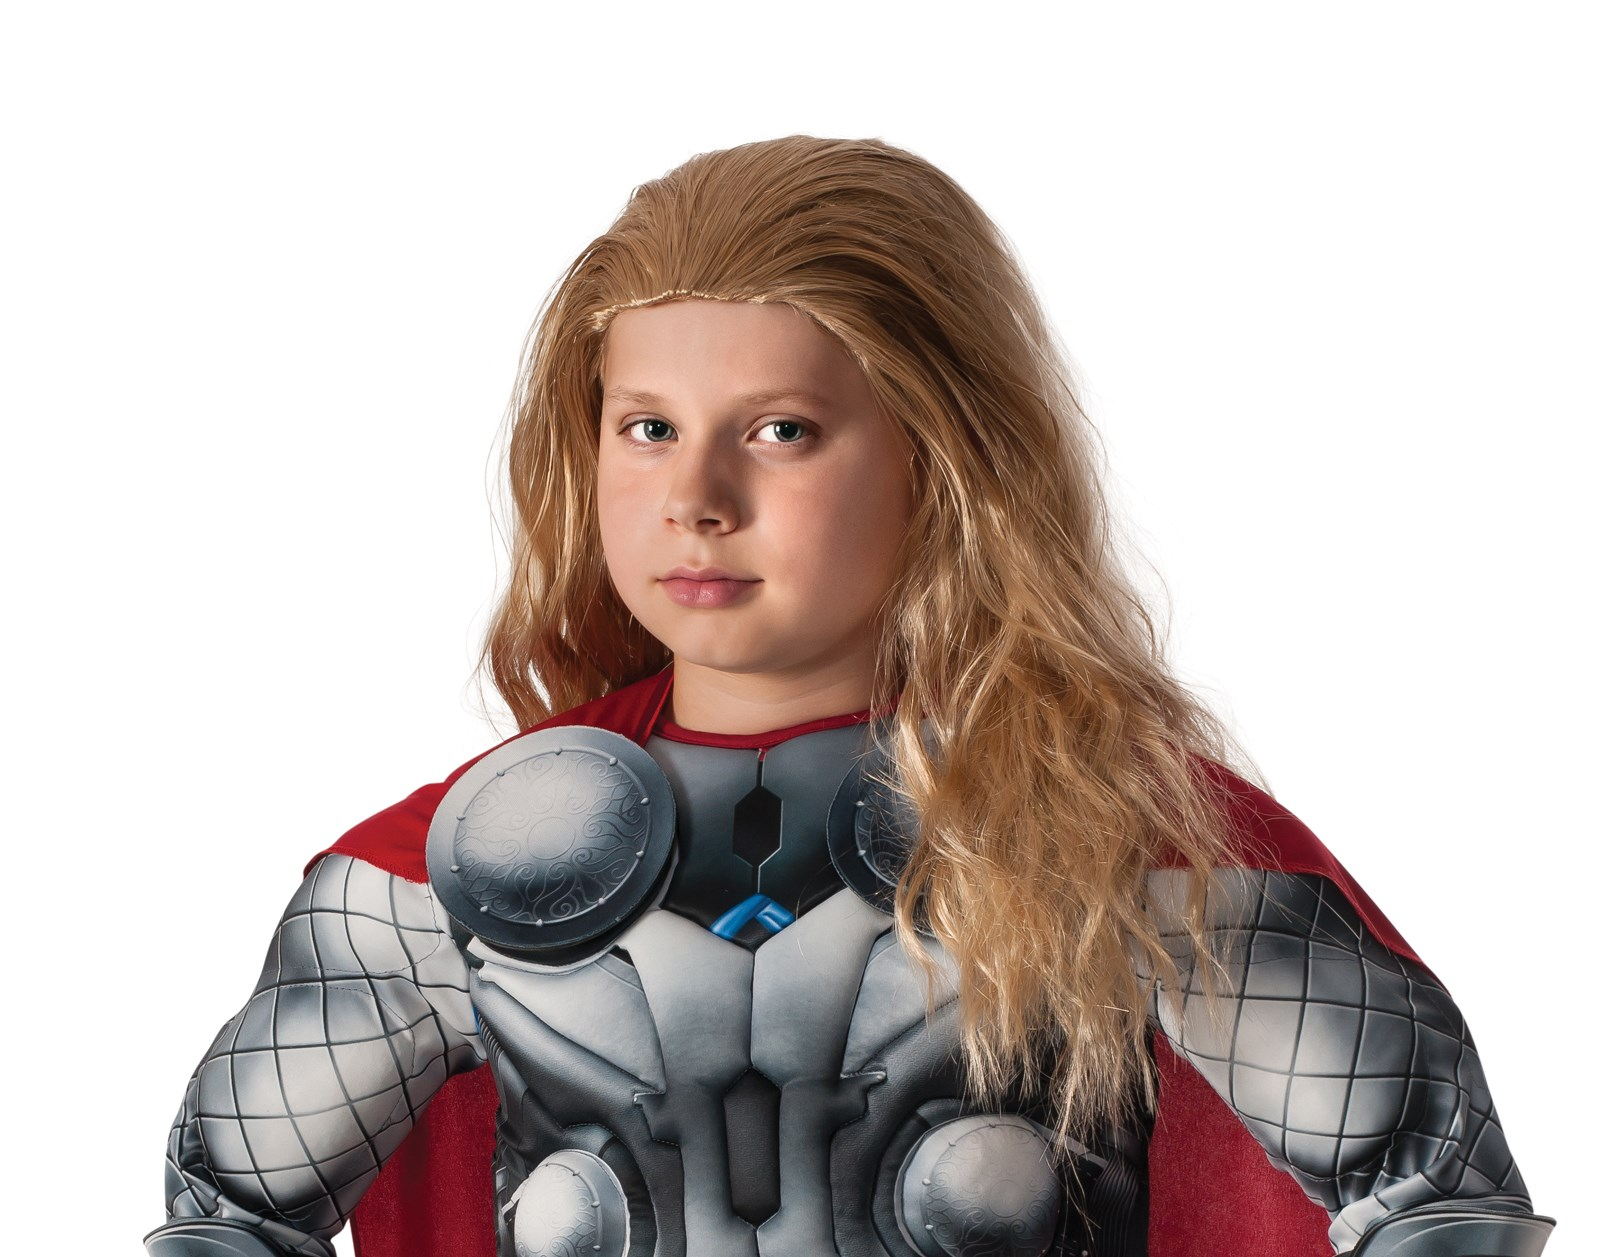 Avengers 2 - Age of Ultron: Thor Kids Wig One-Size